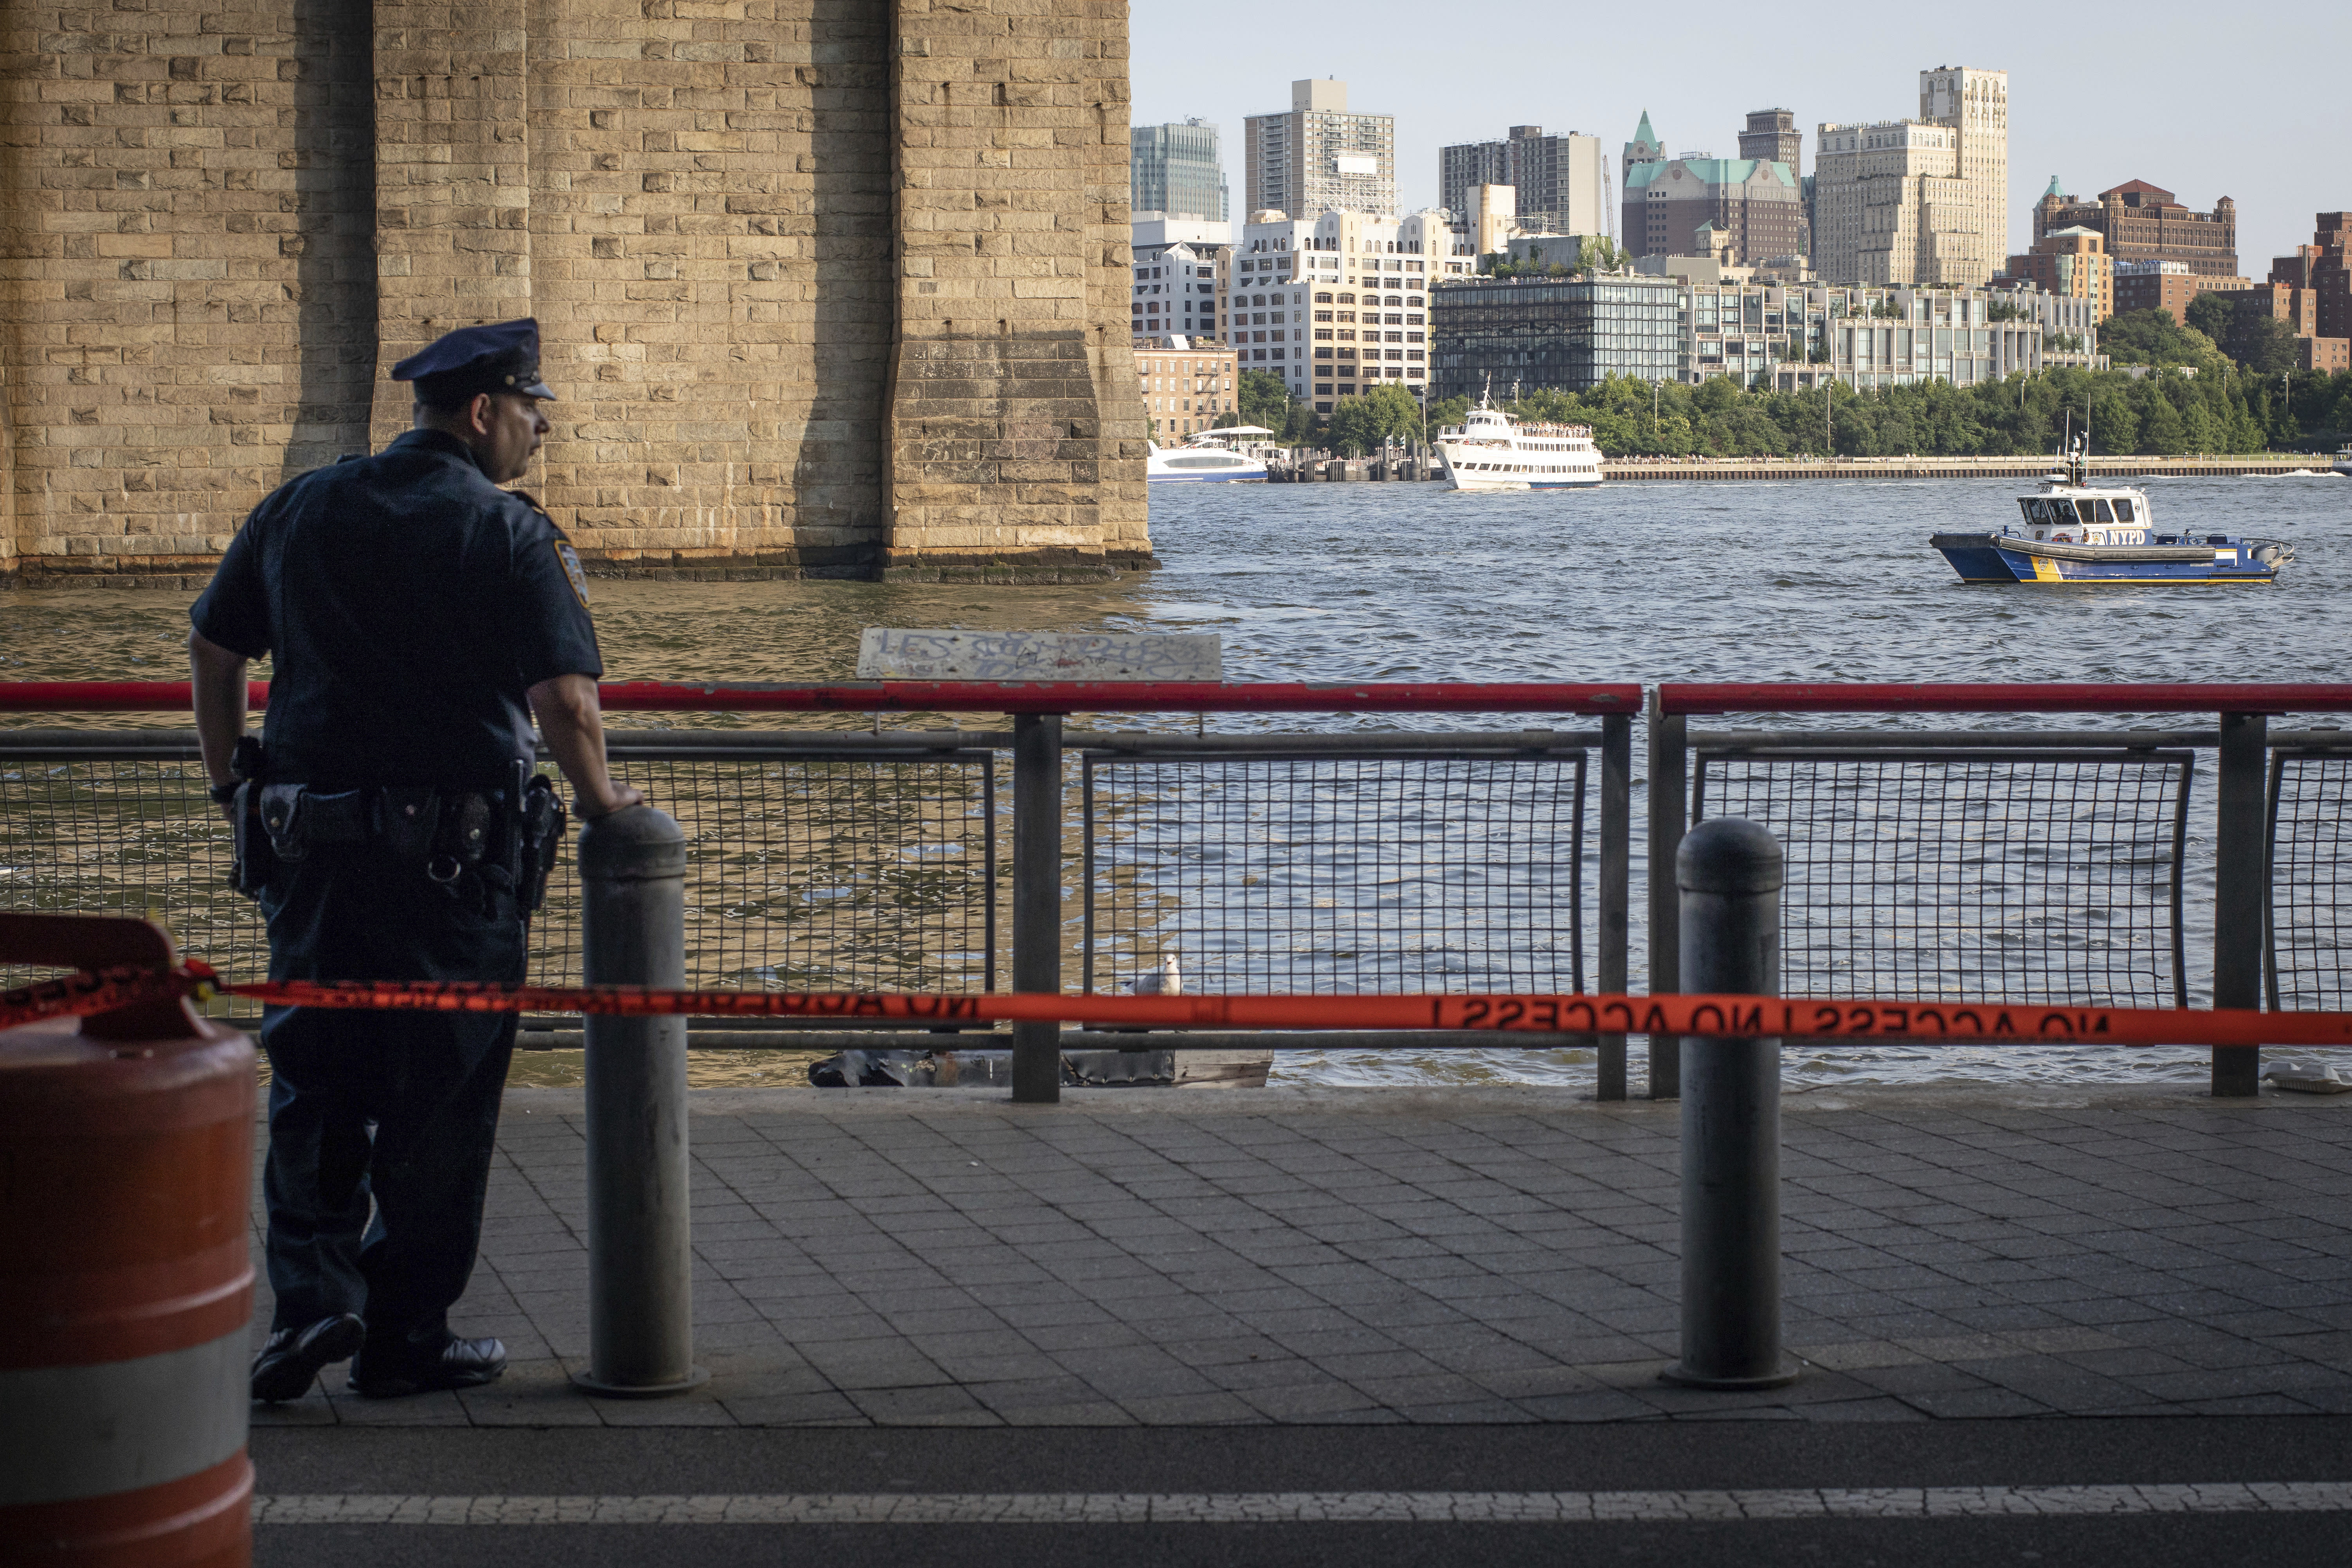 A New York Police Department officer stands guard as authorities investigate the death of a baby boy who was found floating in the water near the Brooklyn Bridge in Manhattan, on Sunday, Aug. 5, 2018, in New York. No parent or guardian was present at the scene and the child showed no signs of trauma, police said. The medical examiner will determine the exact cause of death. (AP Photo/Robert Bumsted)